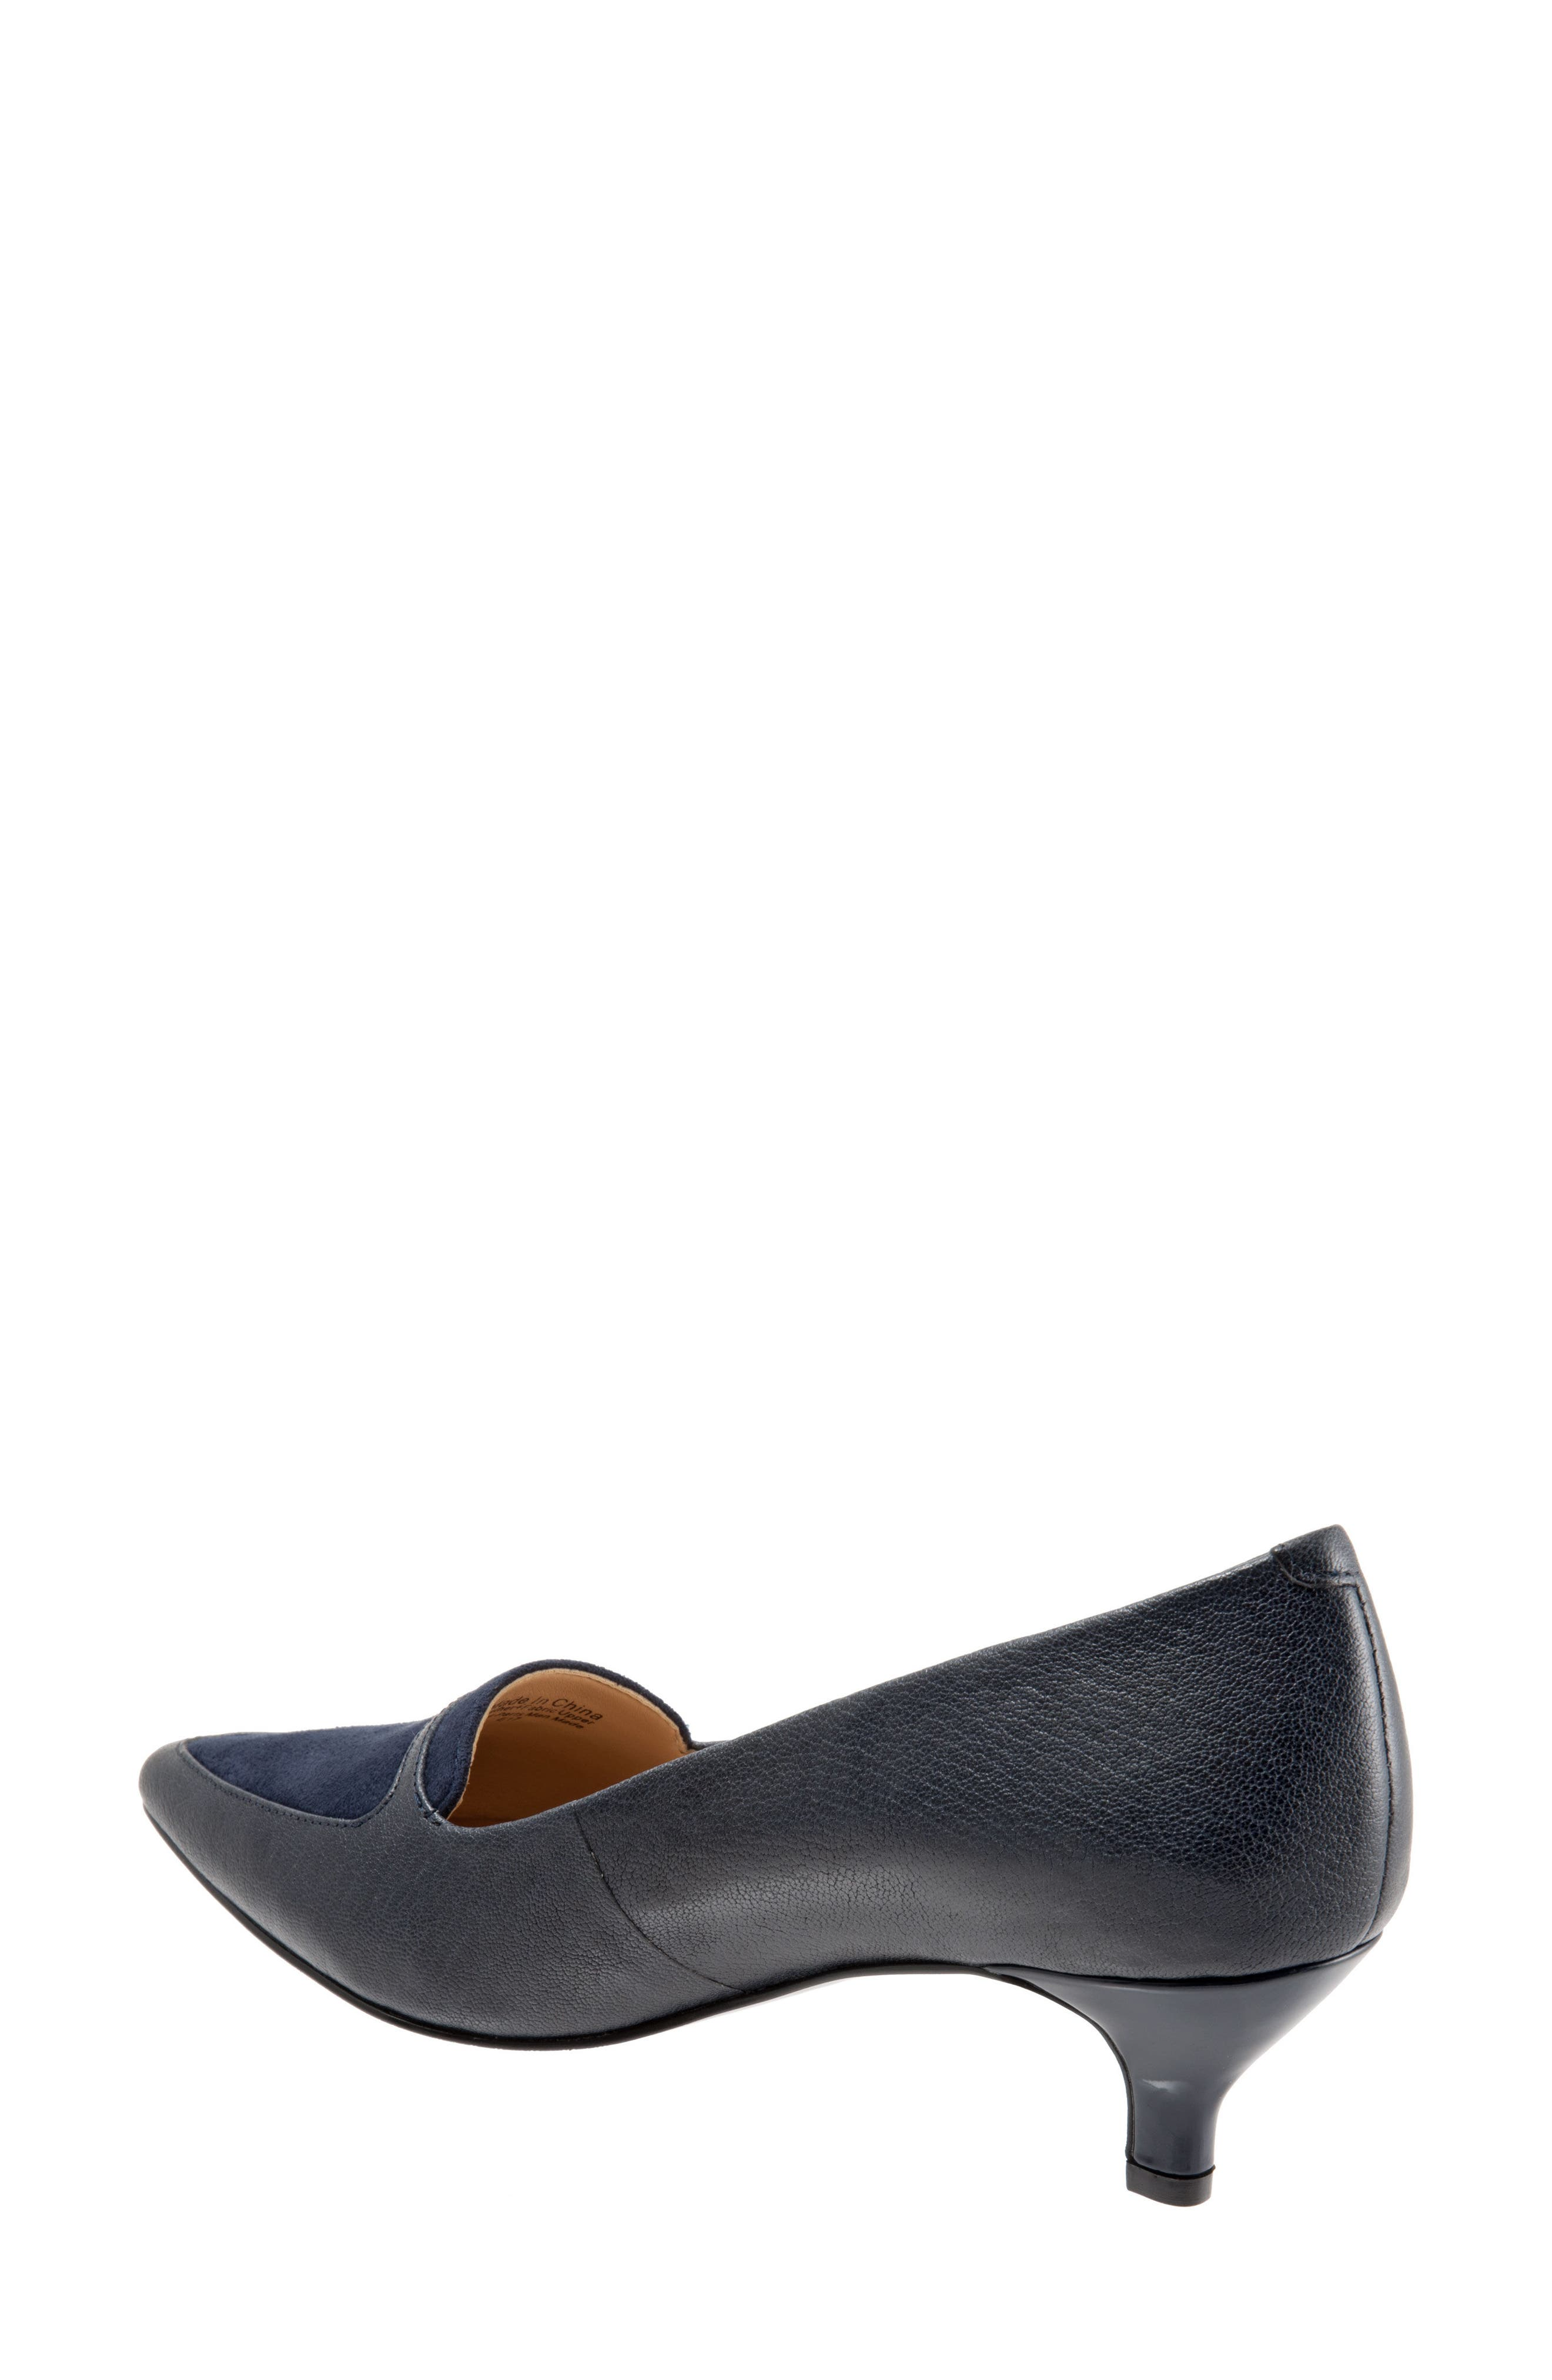 Alternate Image 2  - Trotters 'Piper' Pointy Toe Pump (Women)